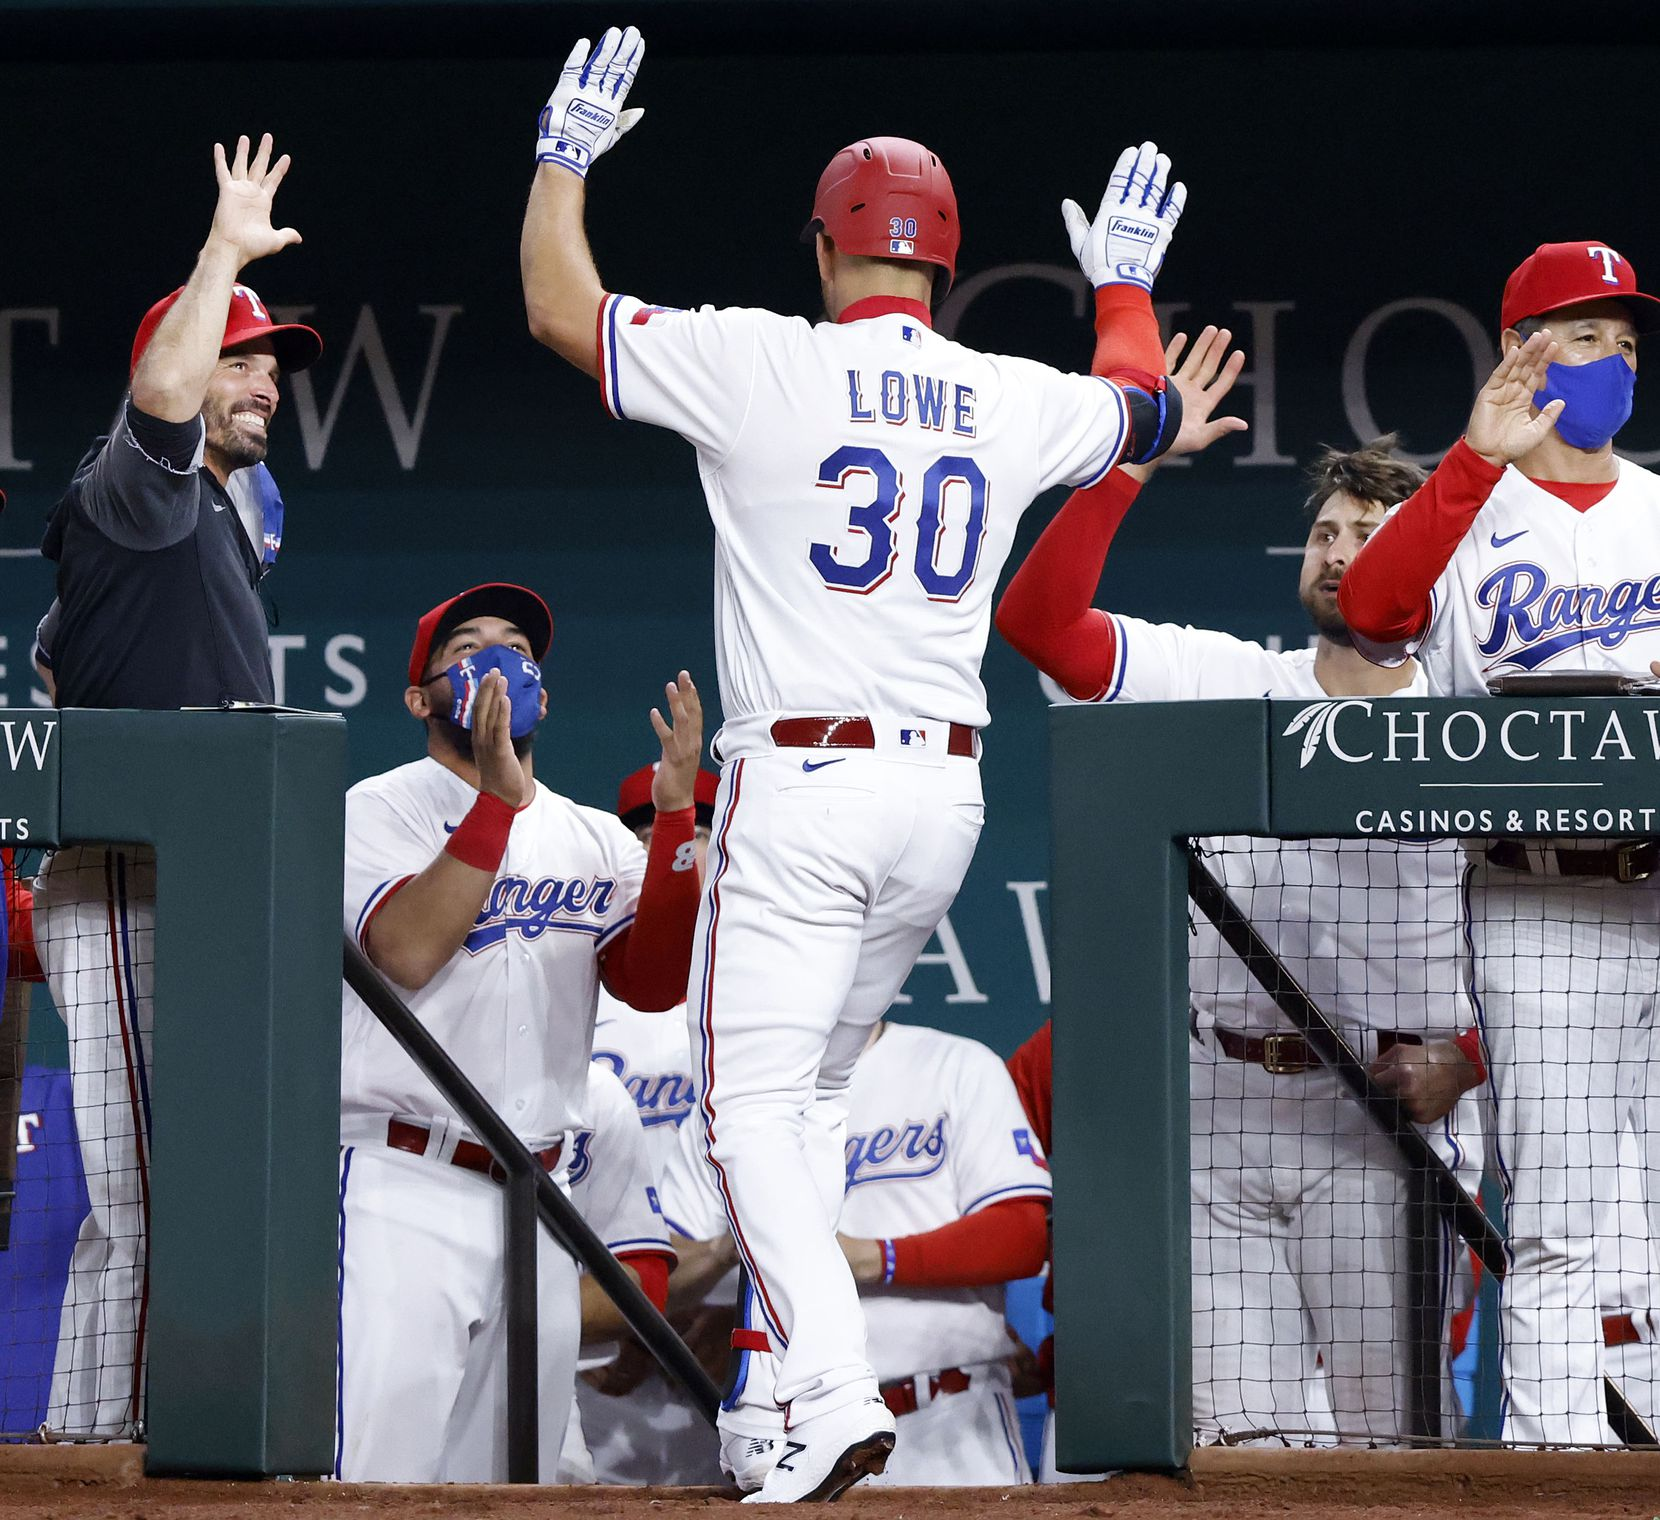 Texas Rangers batter Nate Lowe is congratulated by manager Chris Woodward (left) and teammate Joey Gallo (right) after connecting on a two-run homer during third inning against the Toronto Blue Jays at Globe Life Field in Arlington, Tuesday, April 7, 2021. Lowe scored David Dahl (21). (Tom Fox/The Dallas Morning News)